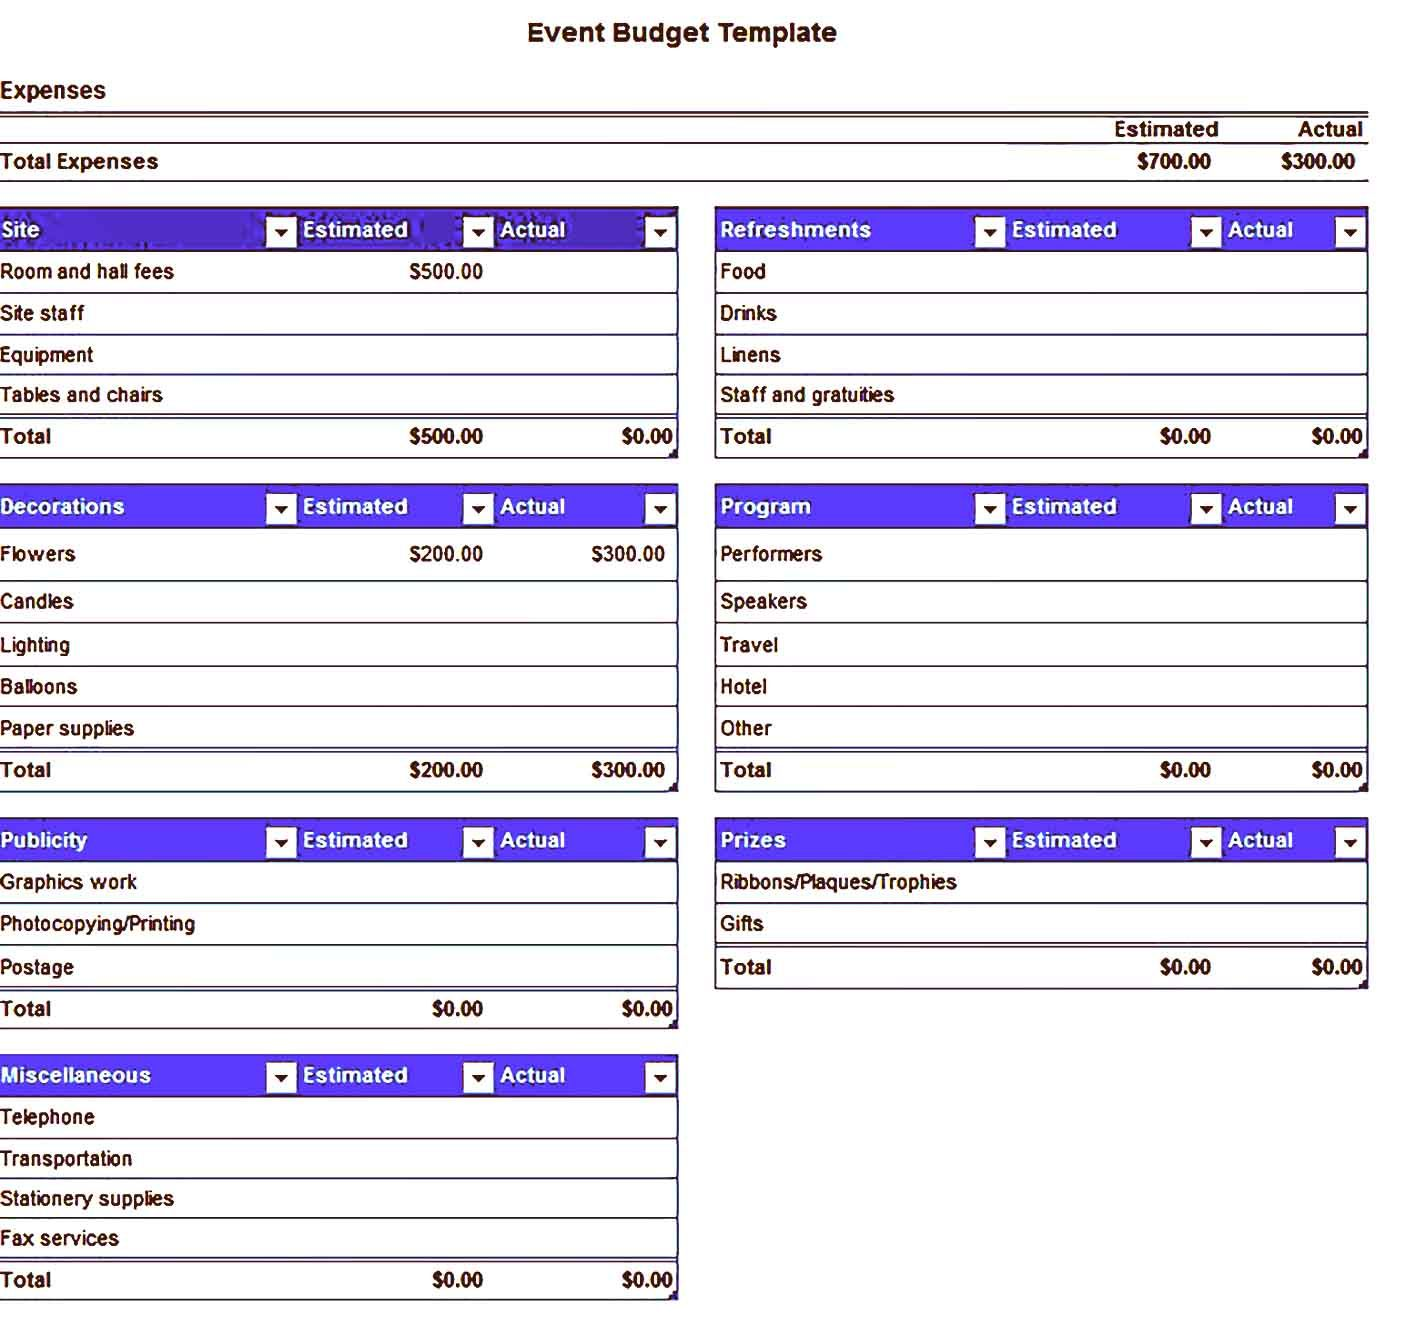 Event Budget Template Sample